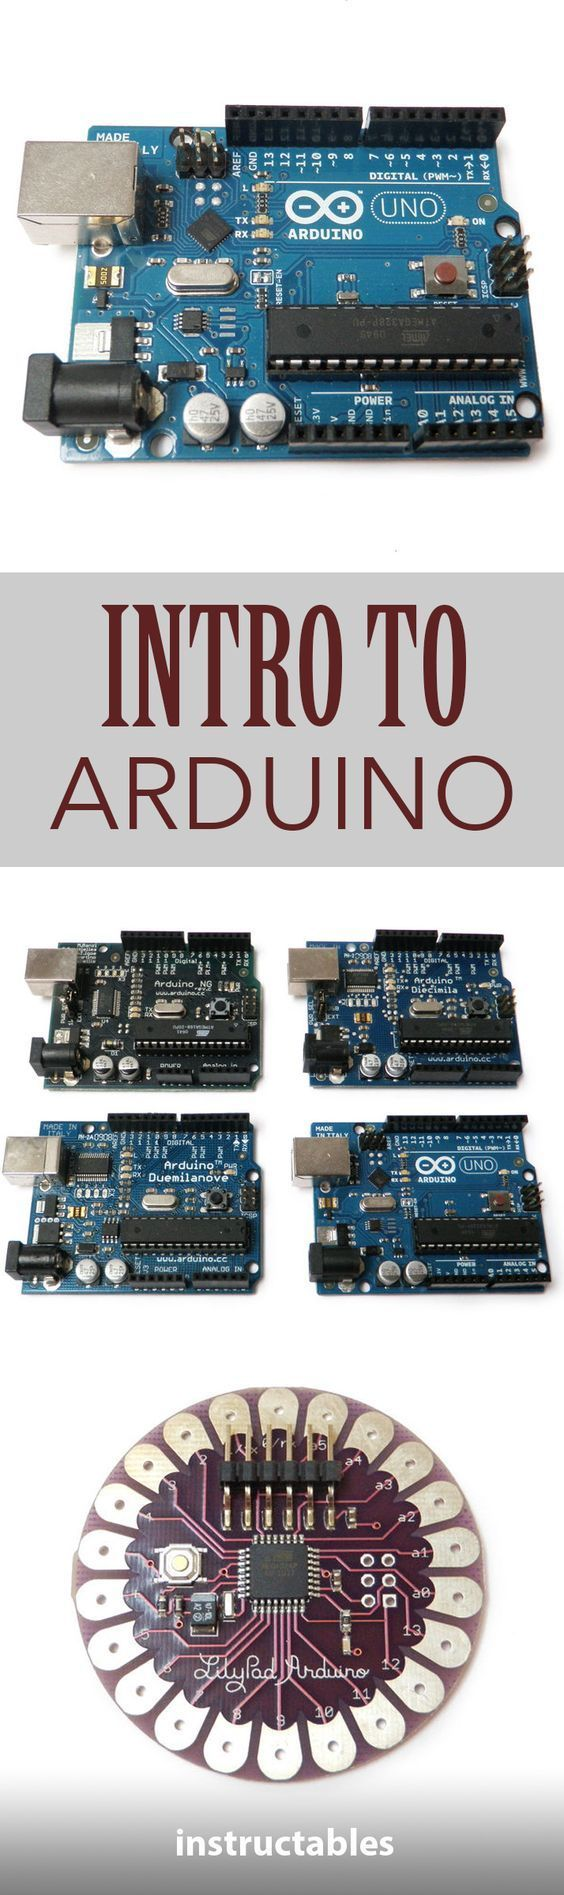 10 Best Ia Images On Pinterest Box Creativity And Good Ideas Homemade 100 Hp Motor Controller For An Electric Car Electronicslab Beginner Guide To Using Arduino How Get Started